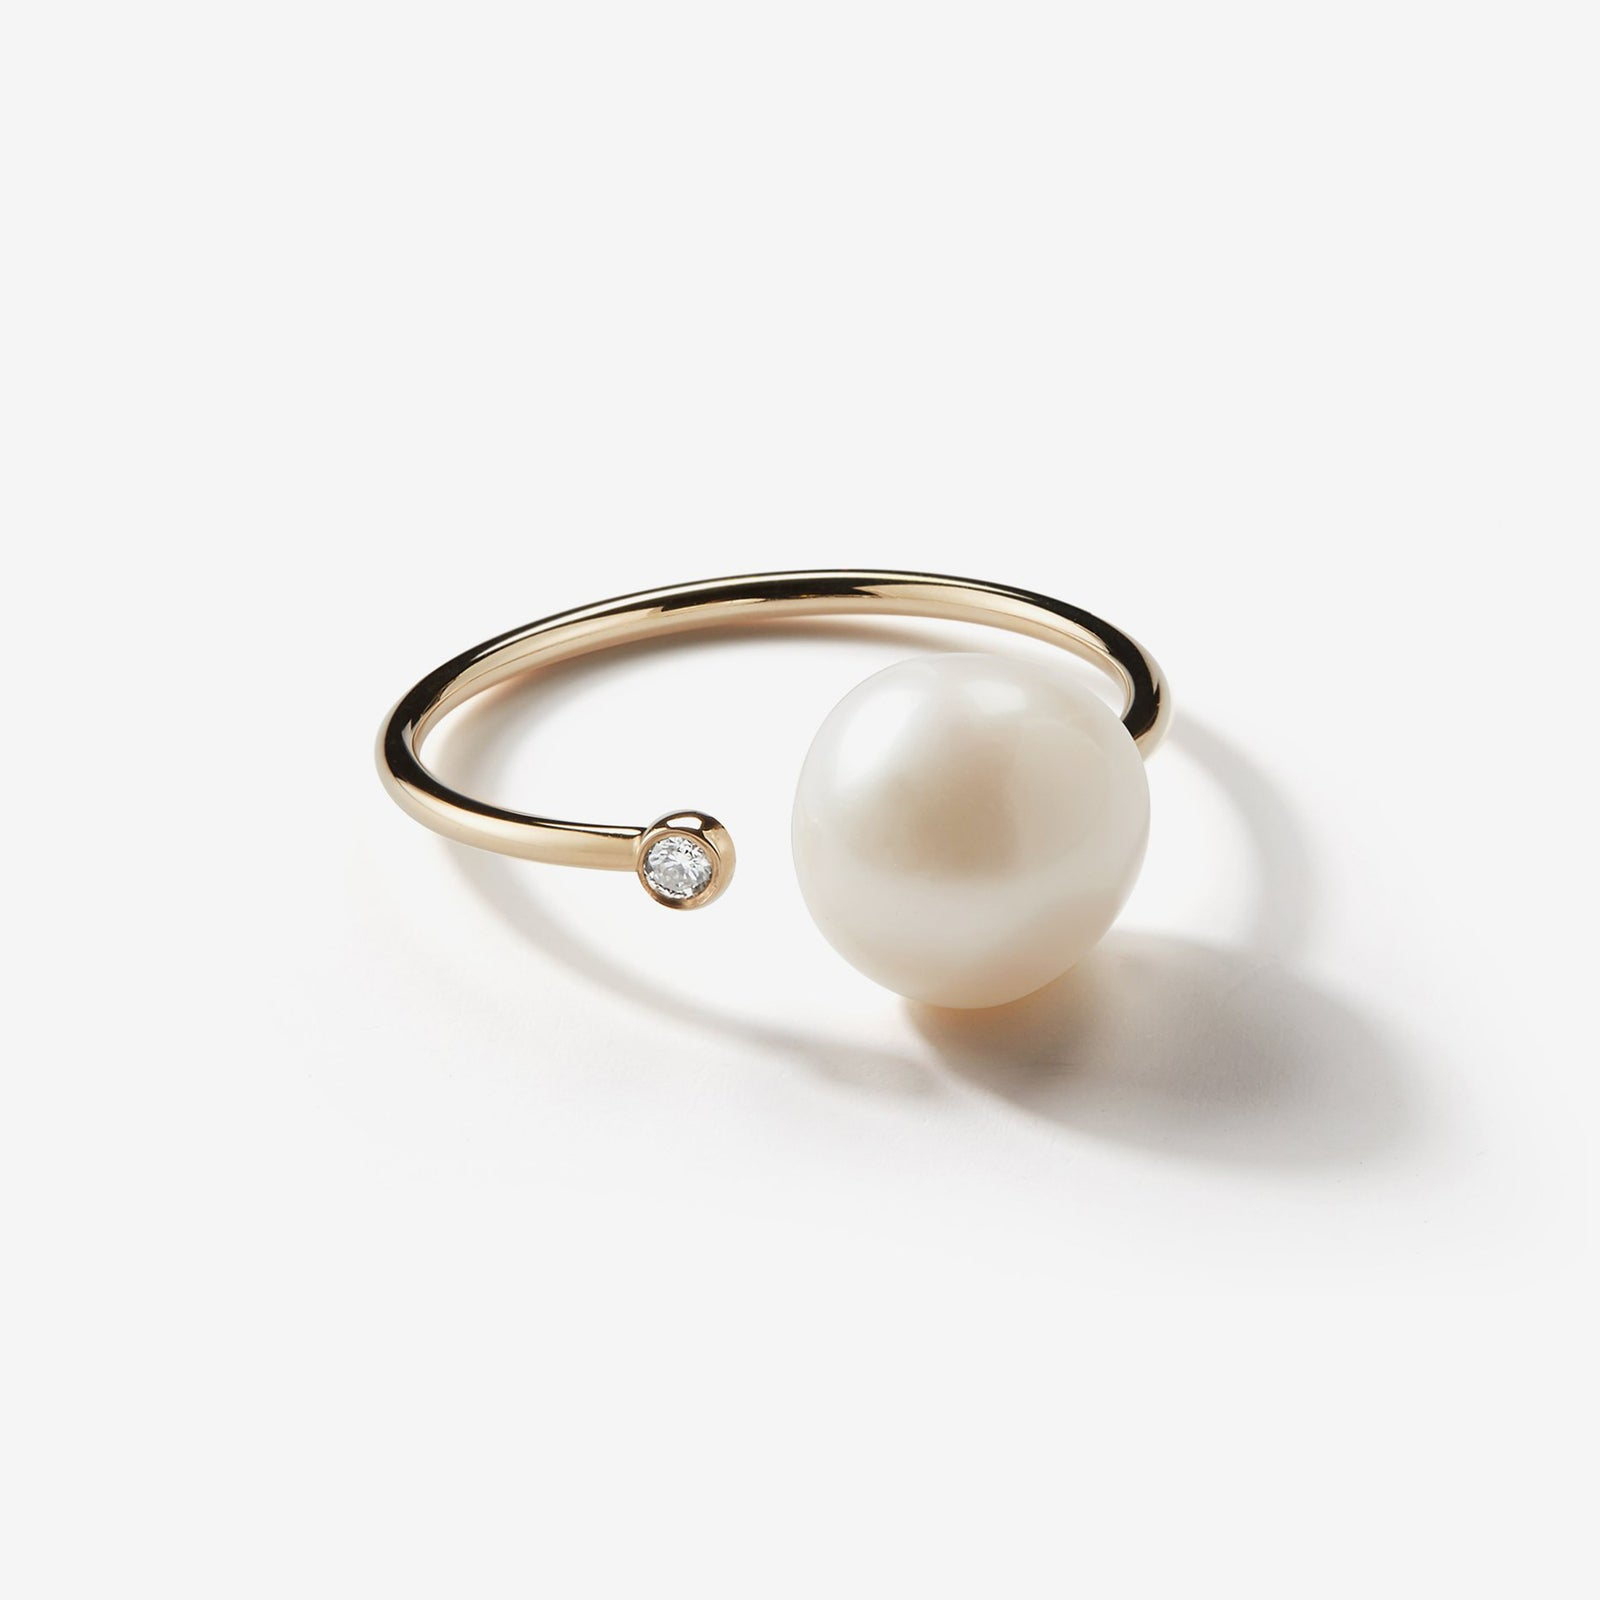 Sea of Beauty Collection.  Open Diamond and White Pearl Thin Ring  SBR9W